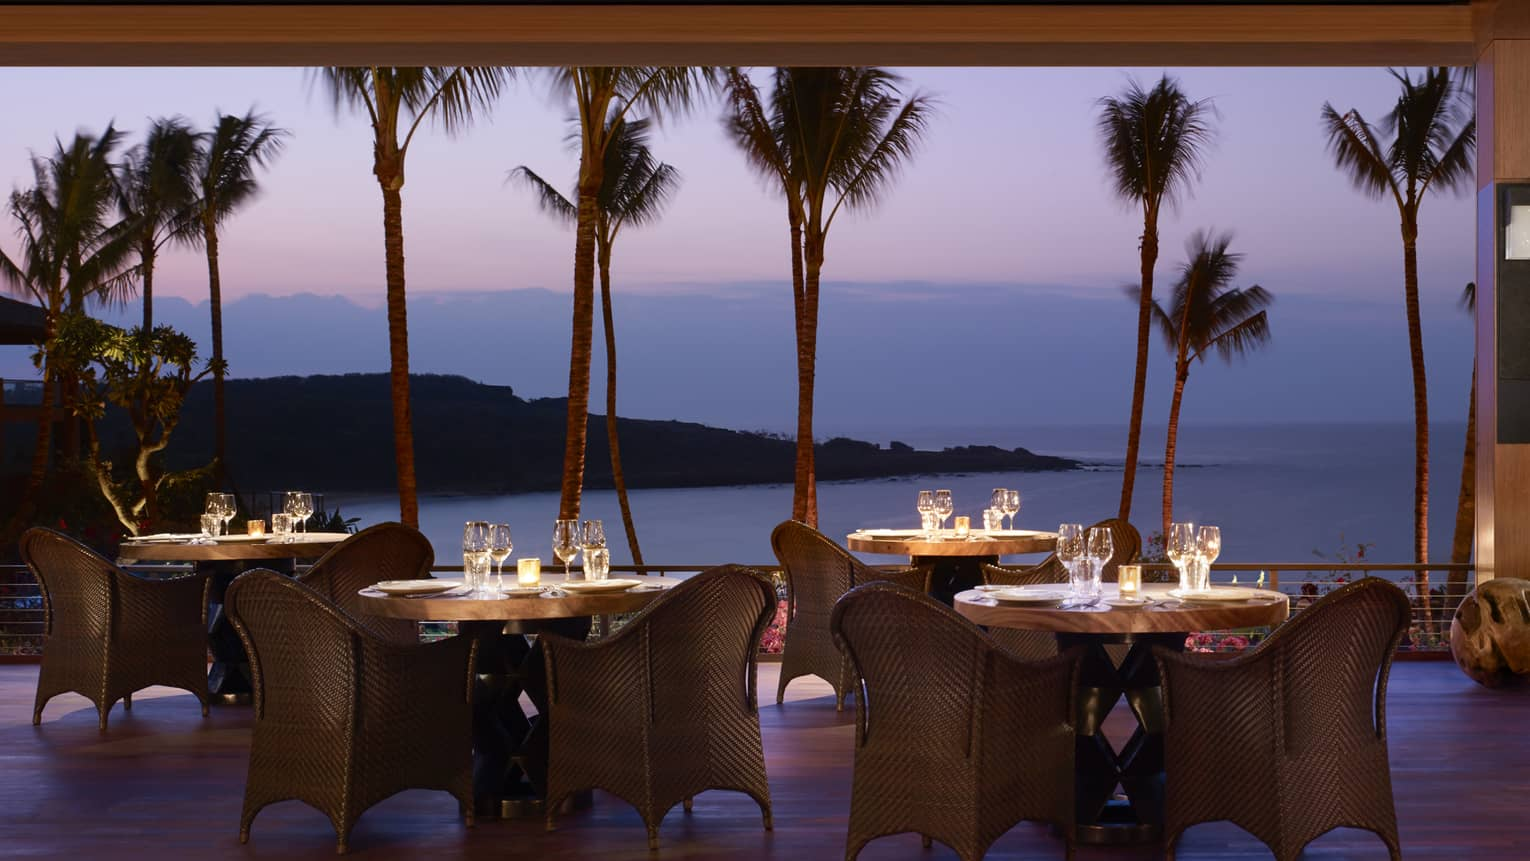 Wicker dining chairs around patio tables overlooking beach on One Forty patio at night